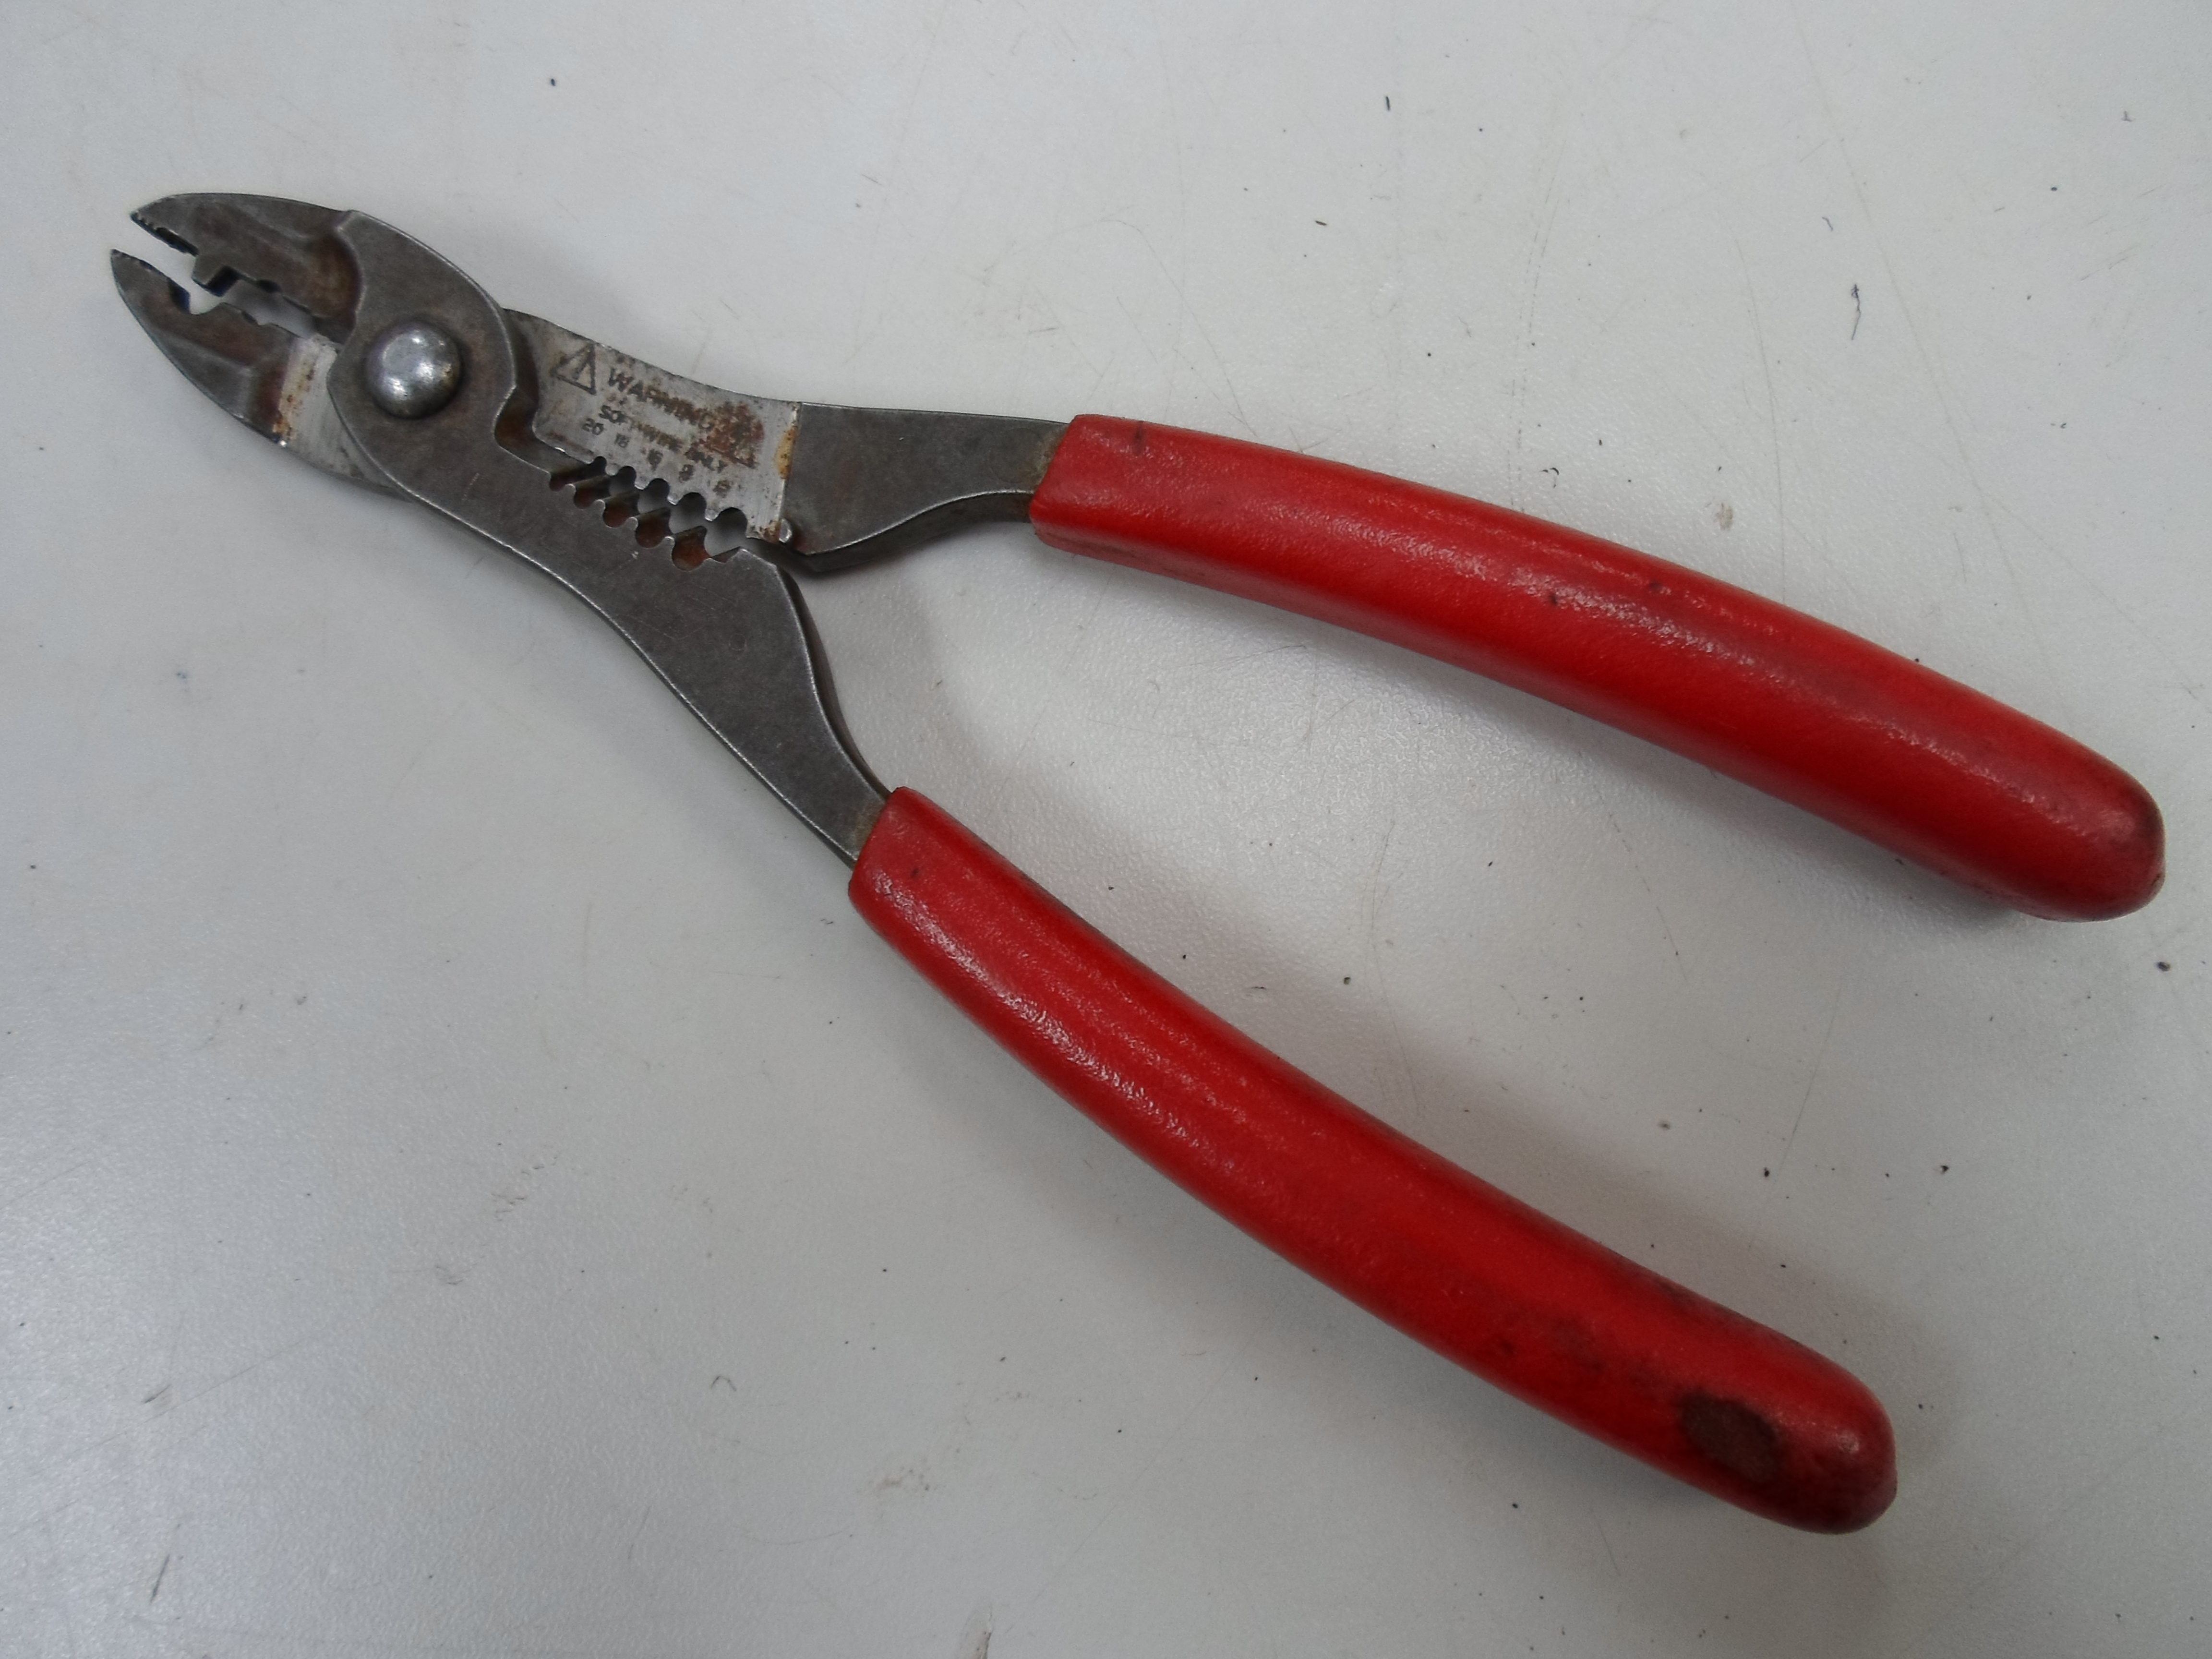 SNAP-ON CRIMPER/STRIPPER/CUTTER W/ RED GRIPS - PWCS7